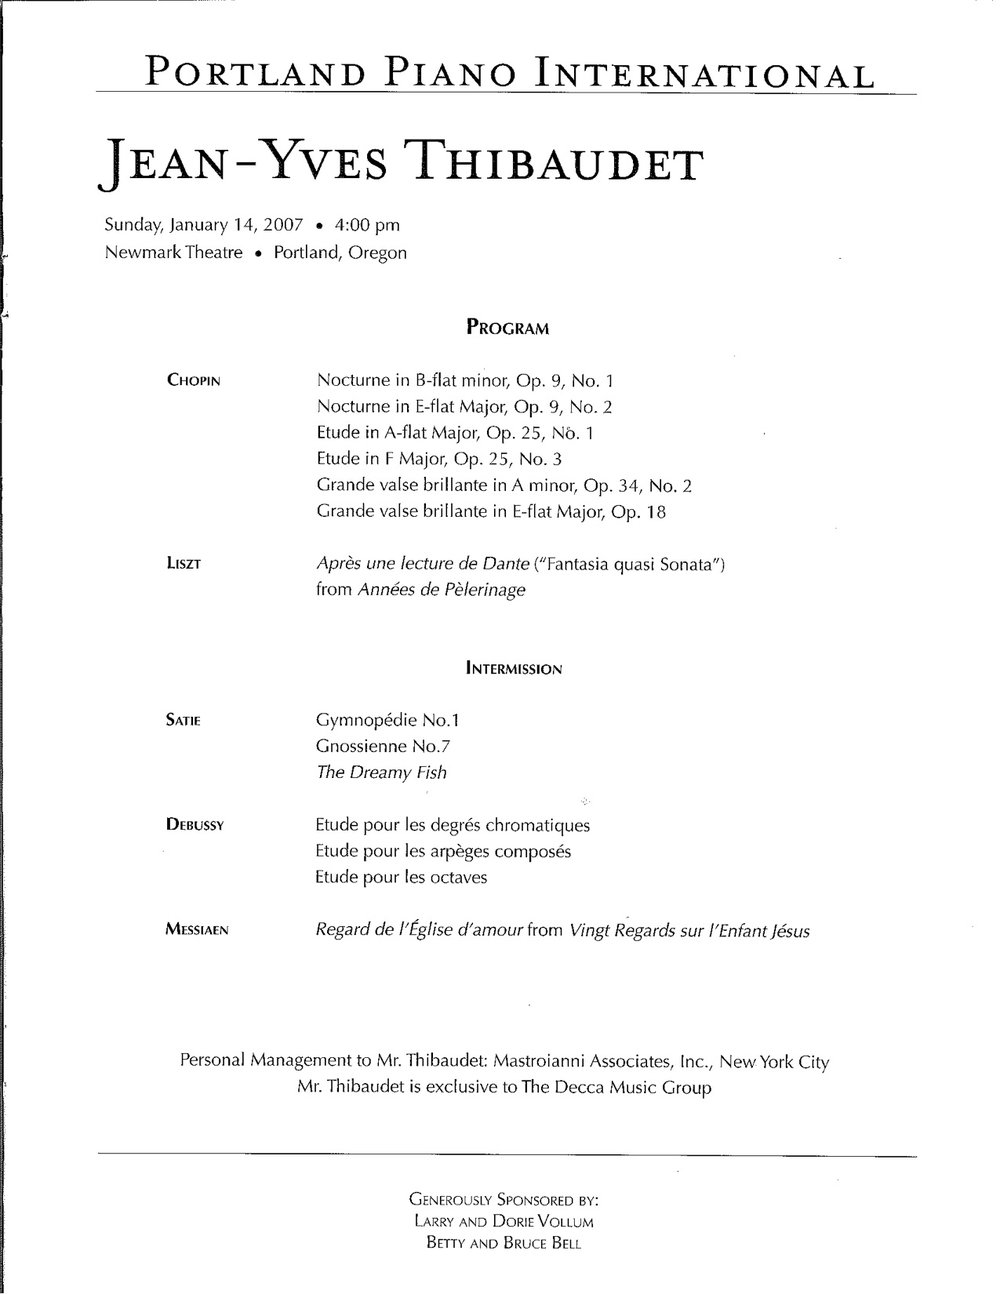 Thibaudet_Program2.jpg